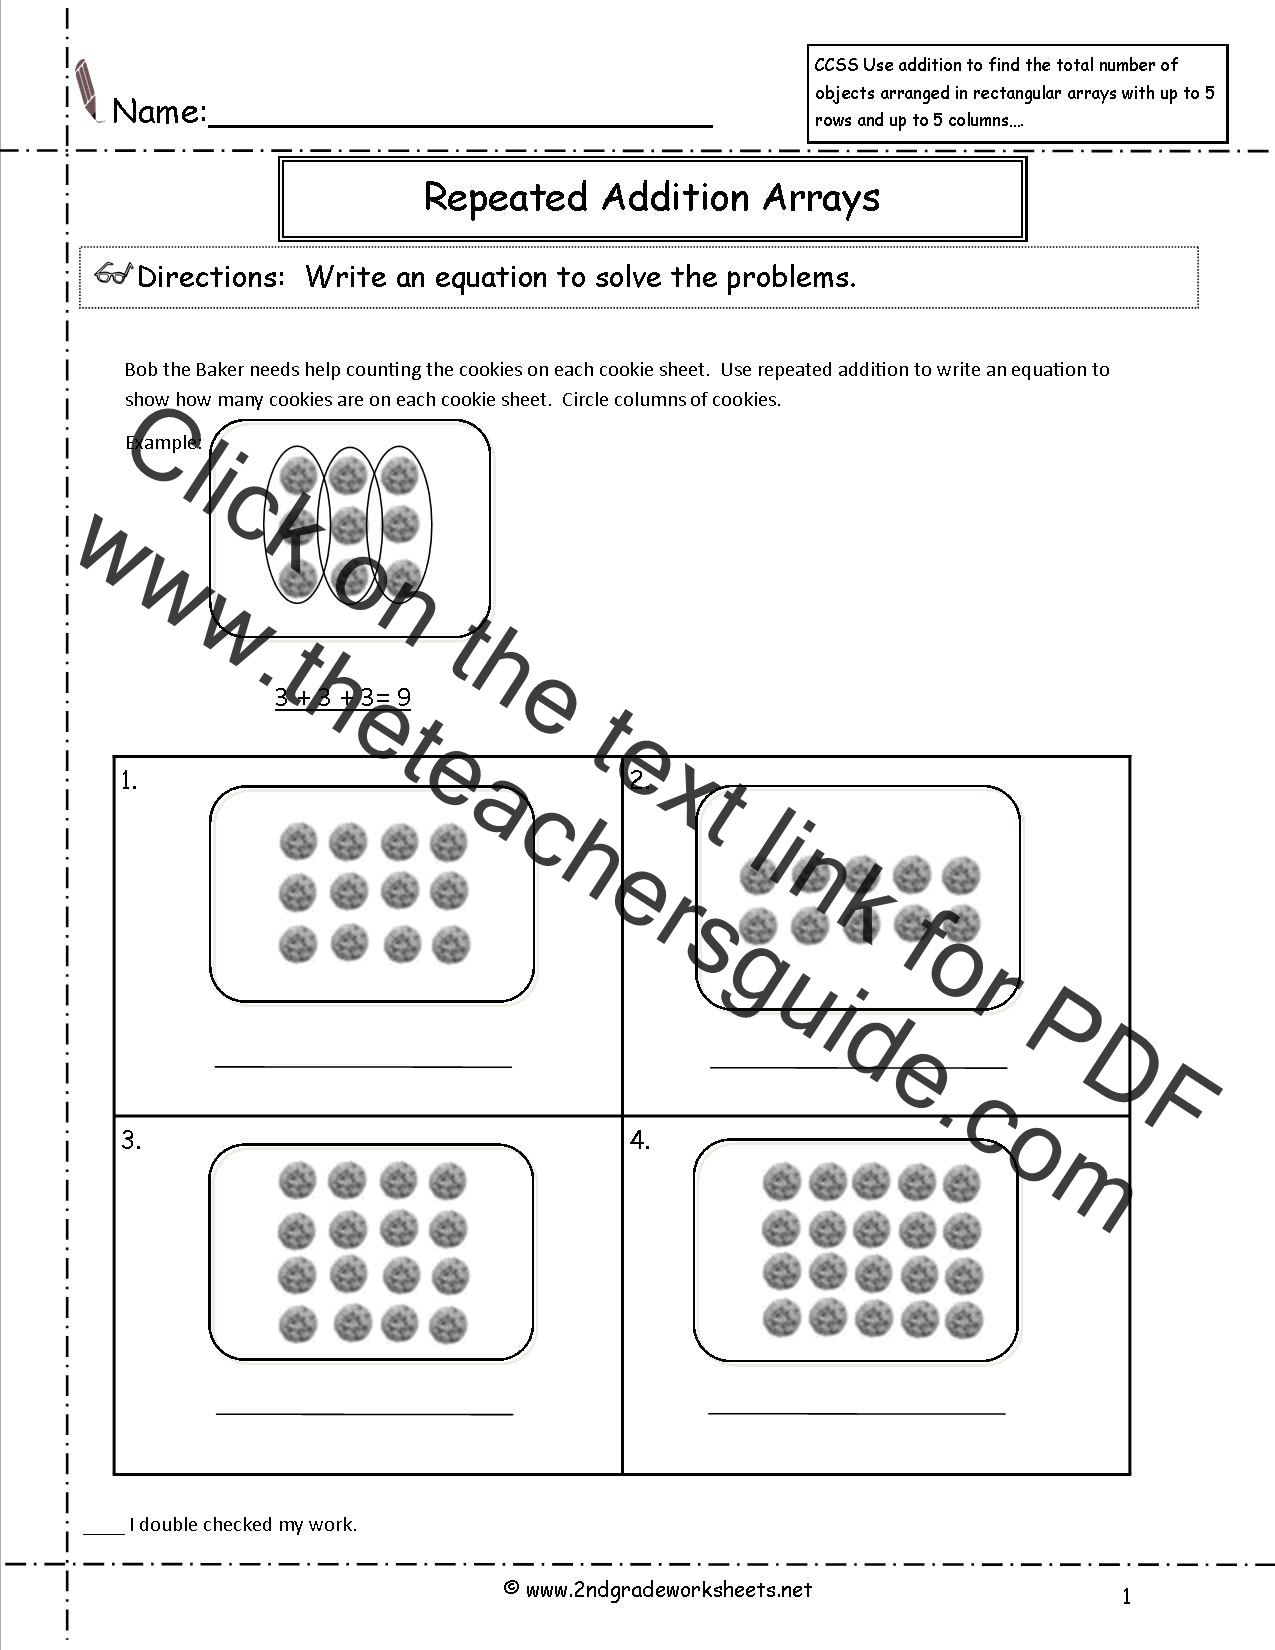 Printables Second Grade Common Core Math Worksheets 2nd grade math common core state standards worksheets ccss 2 oa 4 worksheets